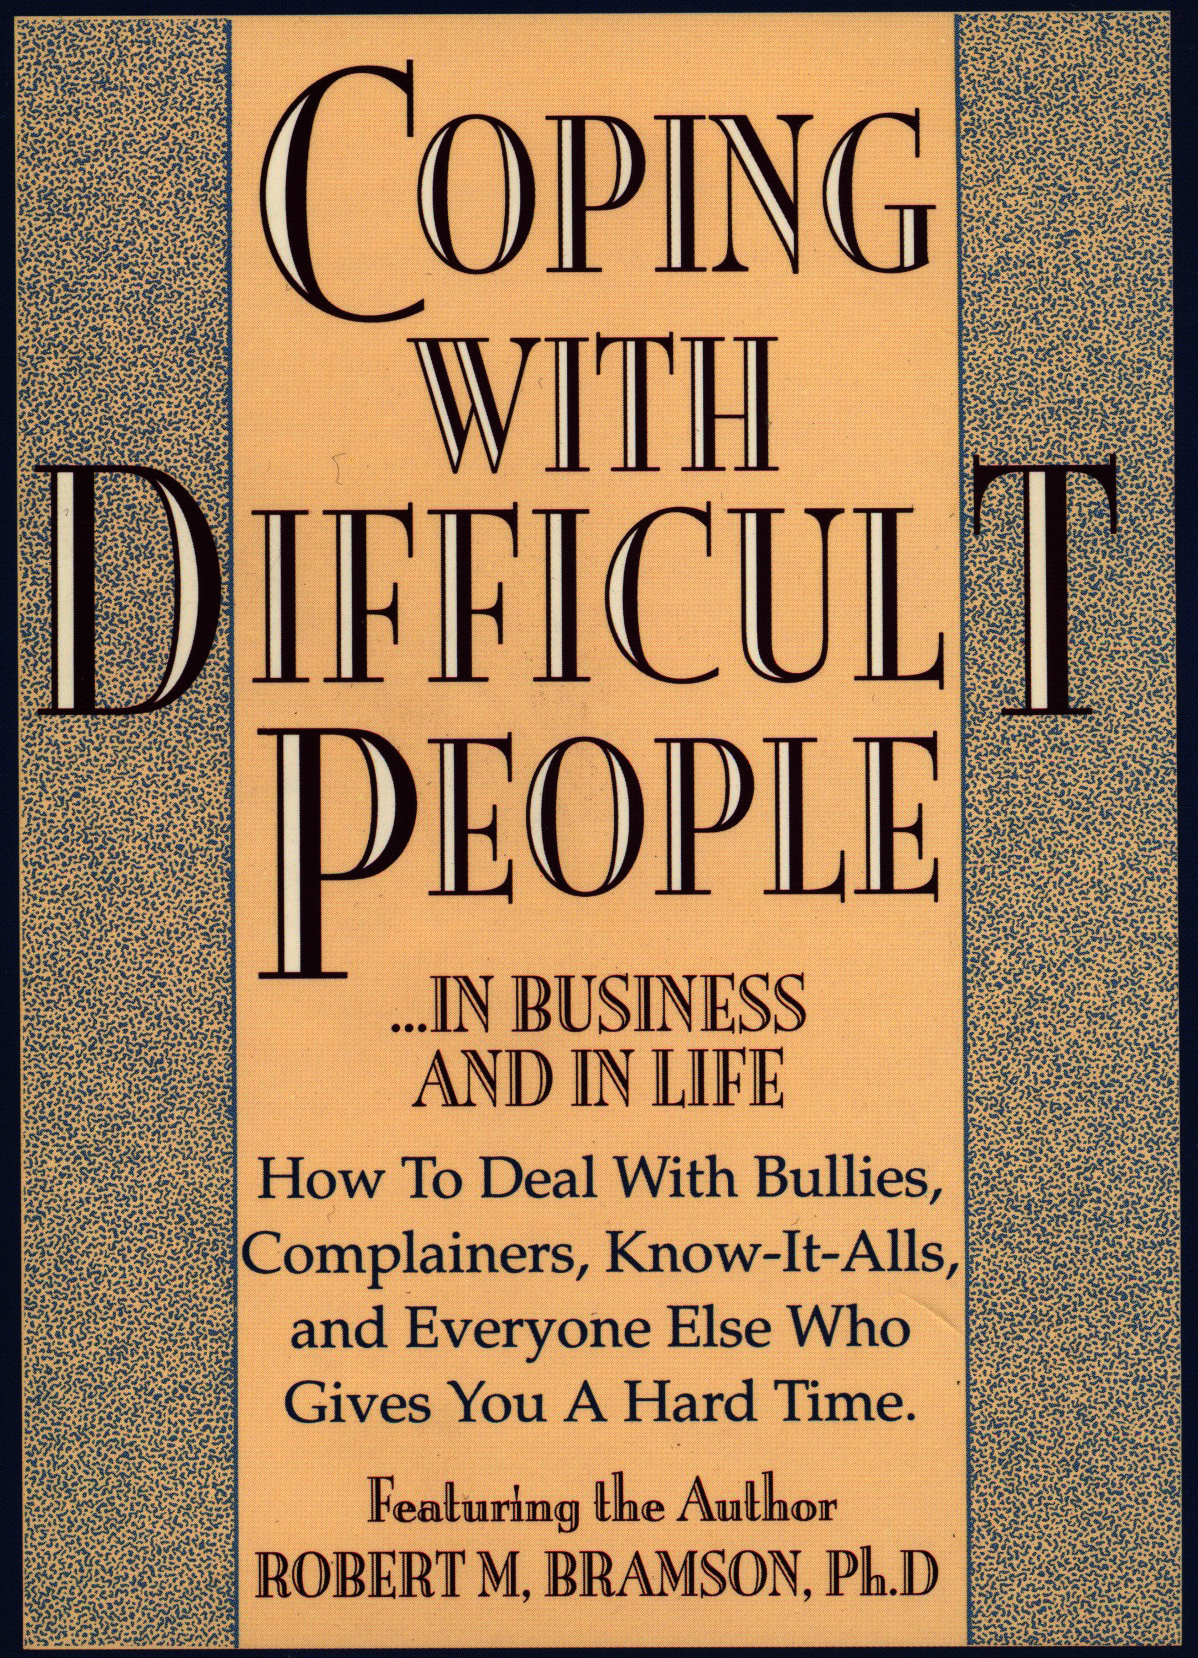 coping with difficult people A prayer foe dealing with difficult people dear lord, please guide my thoughts & actions, so that i bring healing energy & peace to this situtation while at the same time being authentic & true to myself.